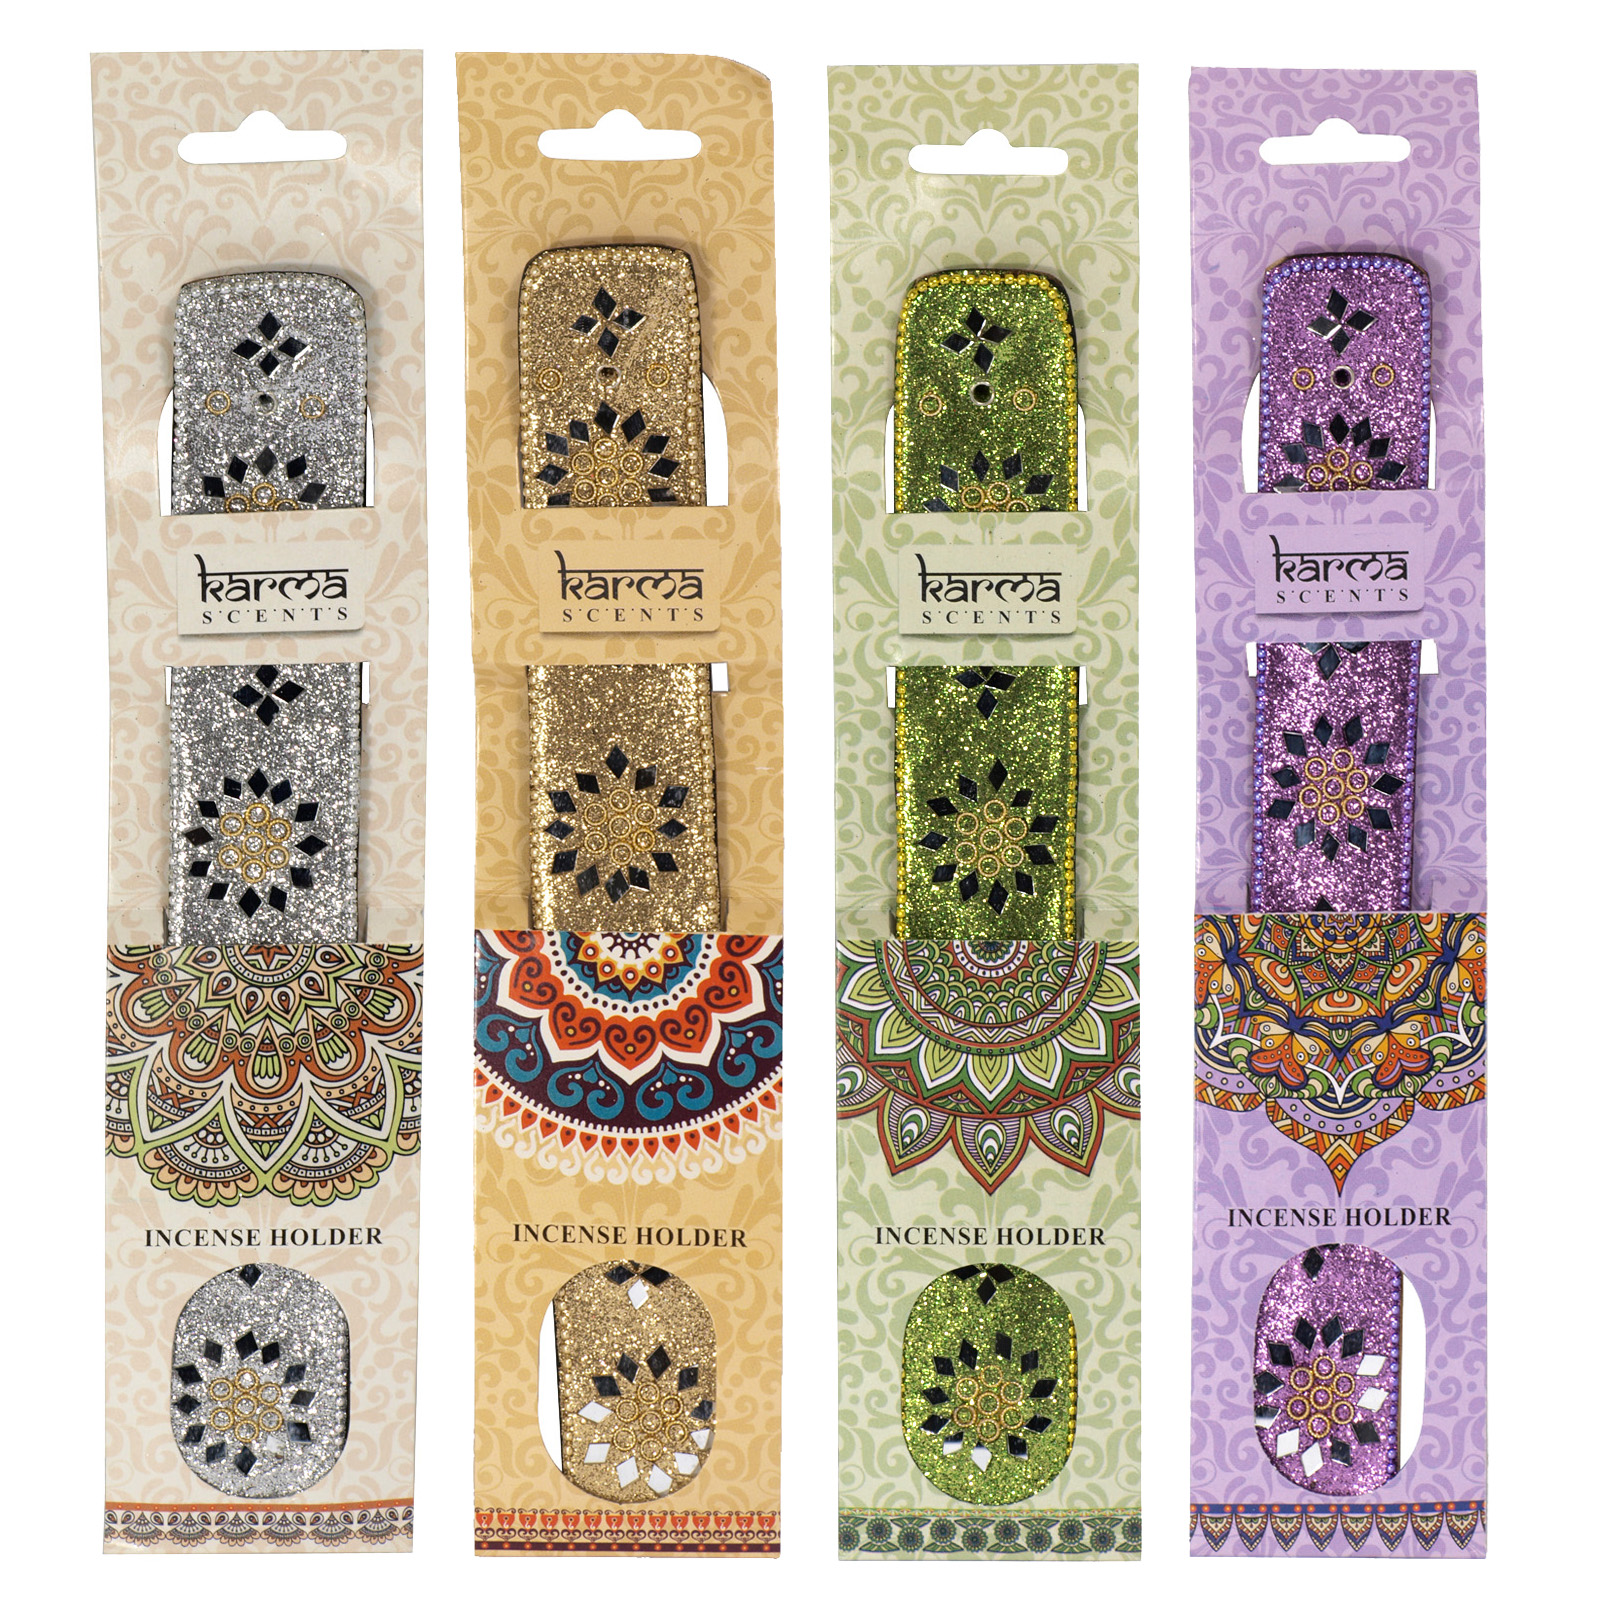 SIL KARMA SCENTS INCENSE HOLDER X12